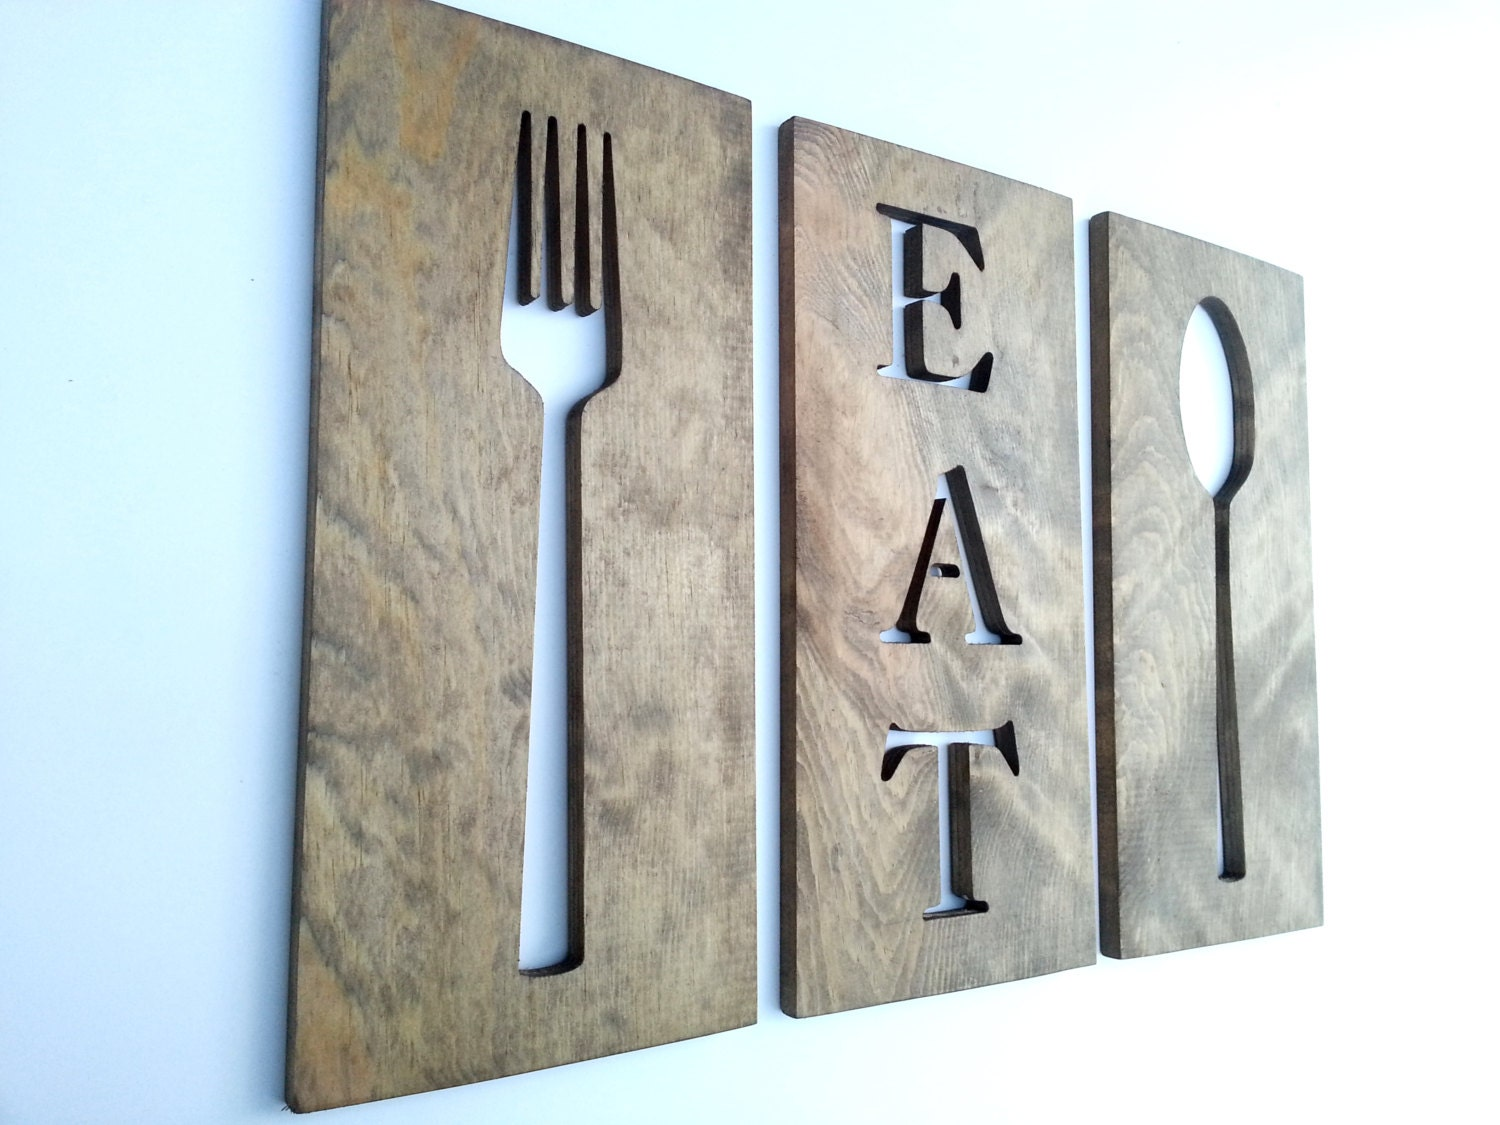 24 39 39 Kitchen Art Fork Spoon And Eat Wooden By Timberartsigns